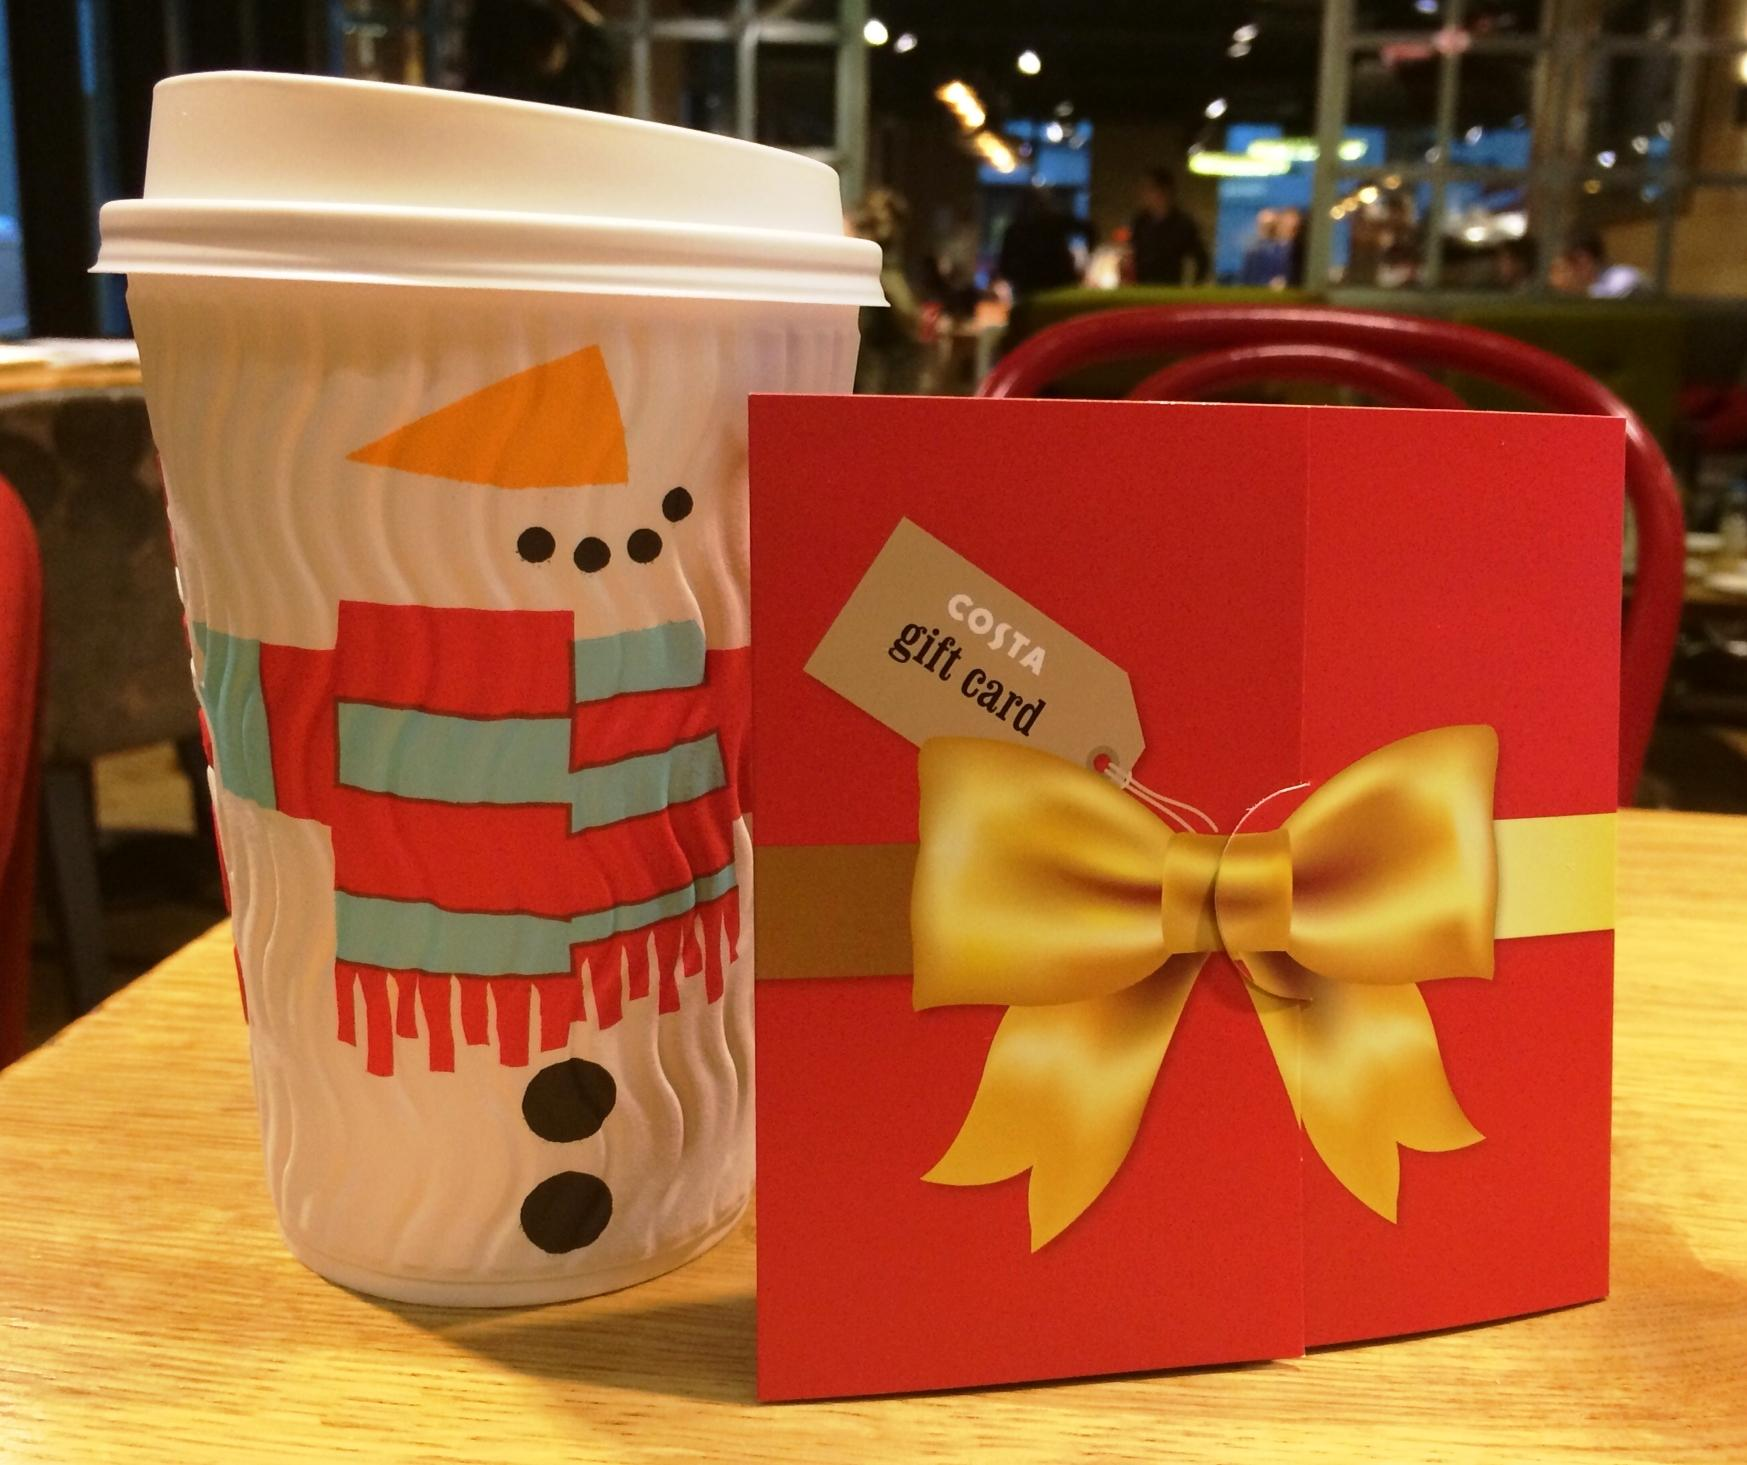 Costa Coffee On Twitter Costa Christmas Gift Cards Are Now